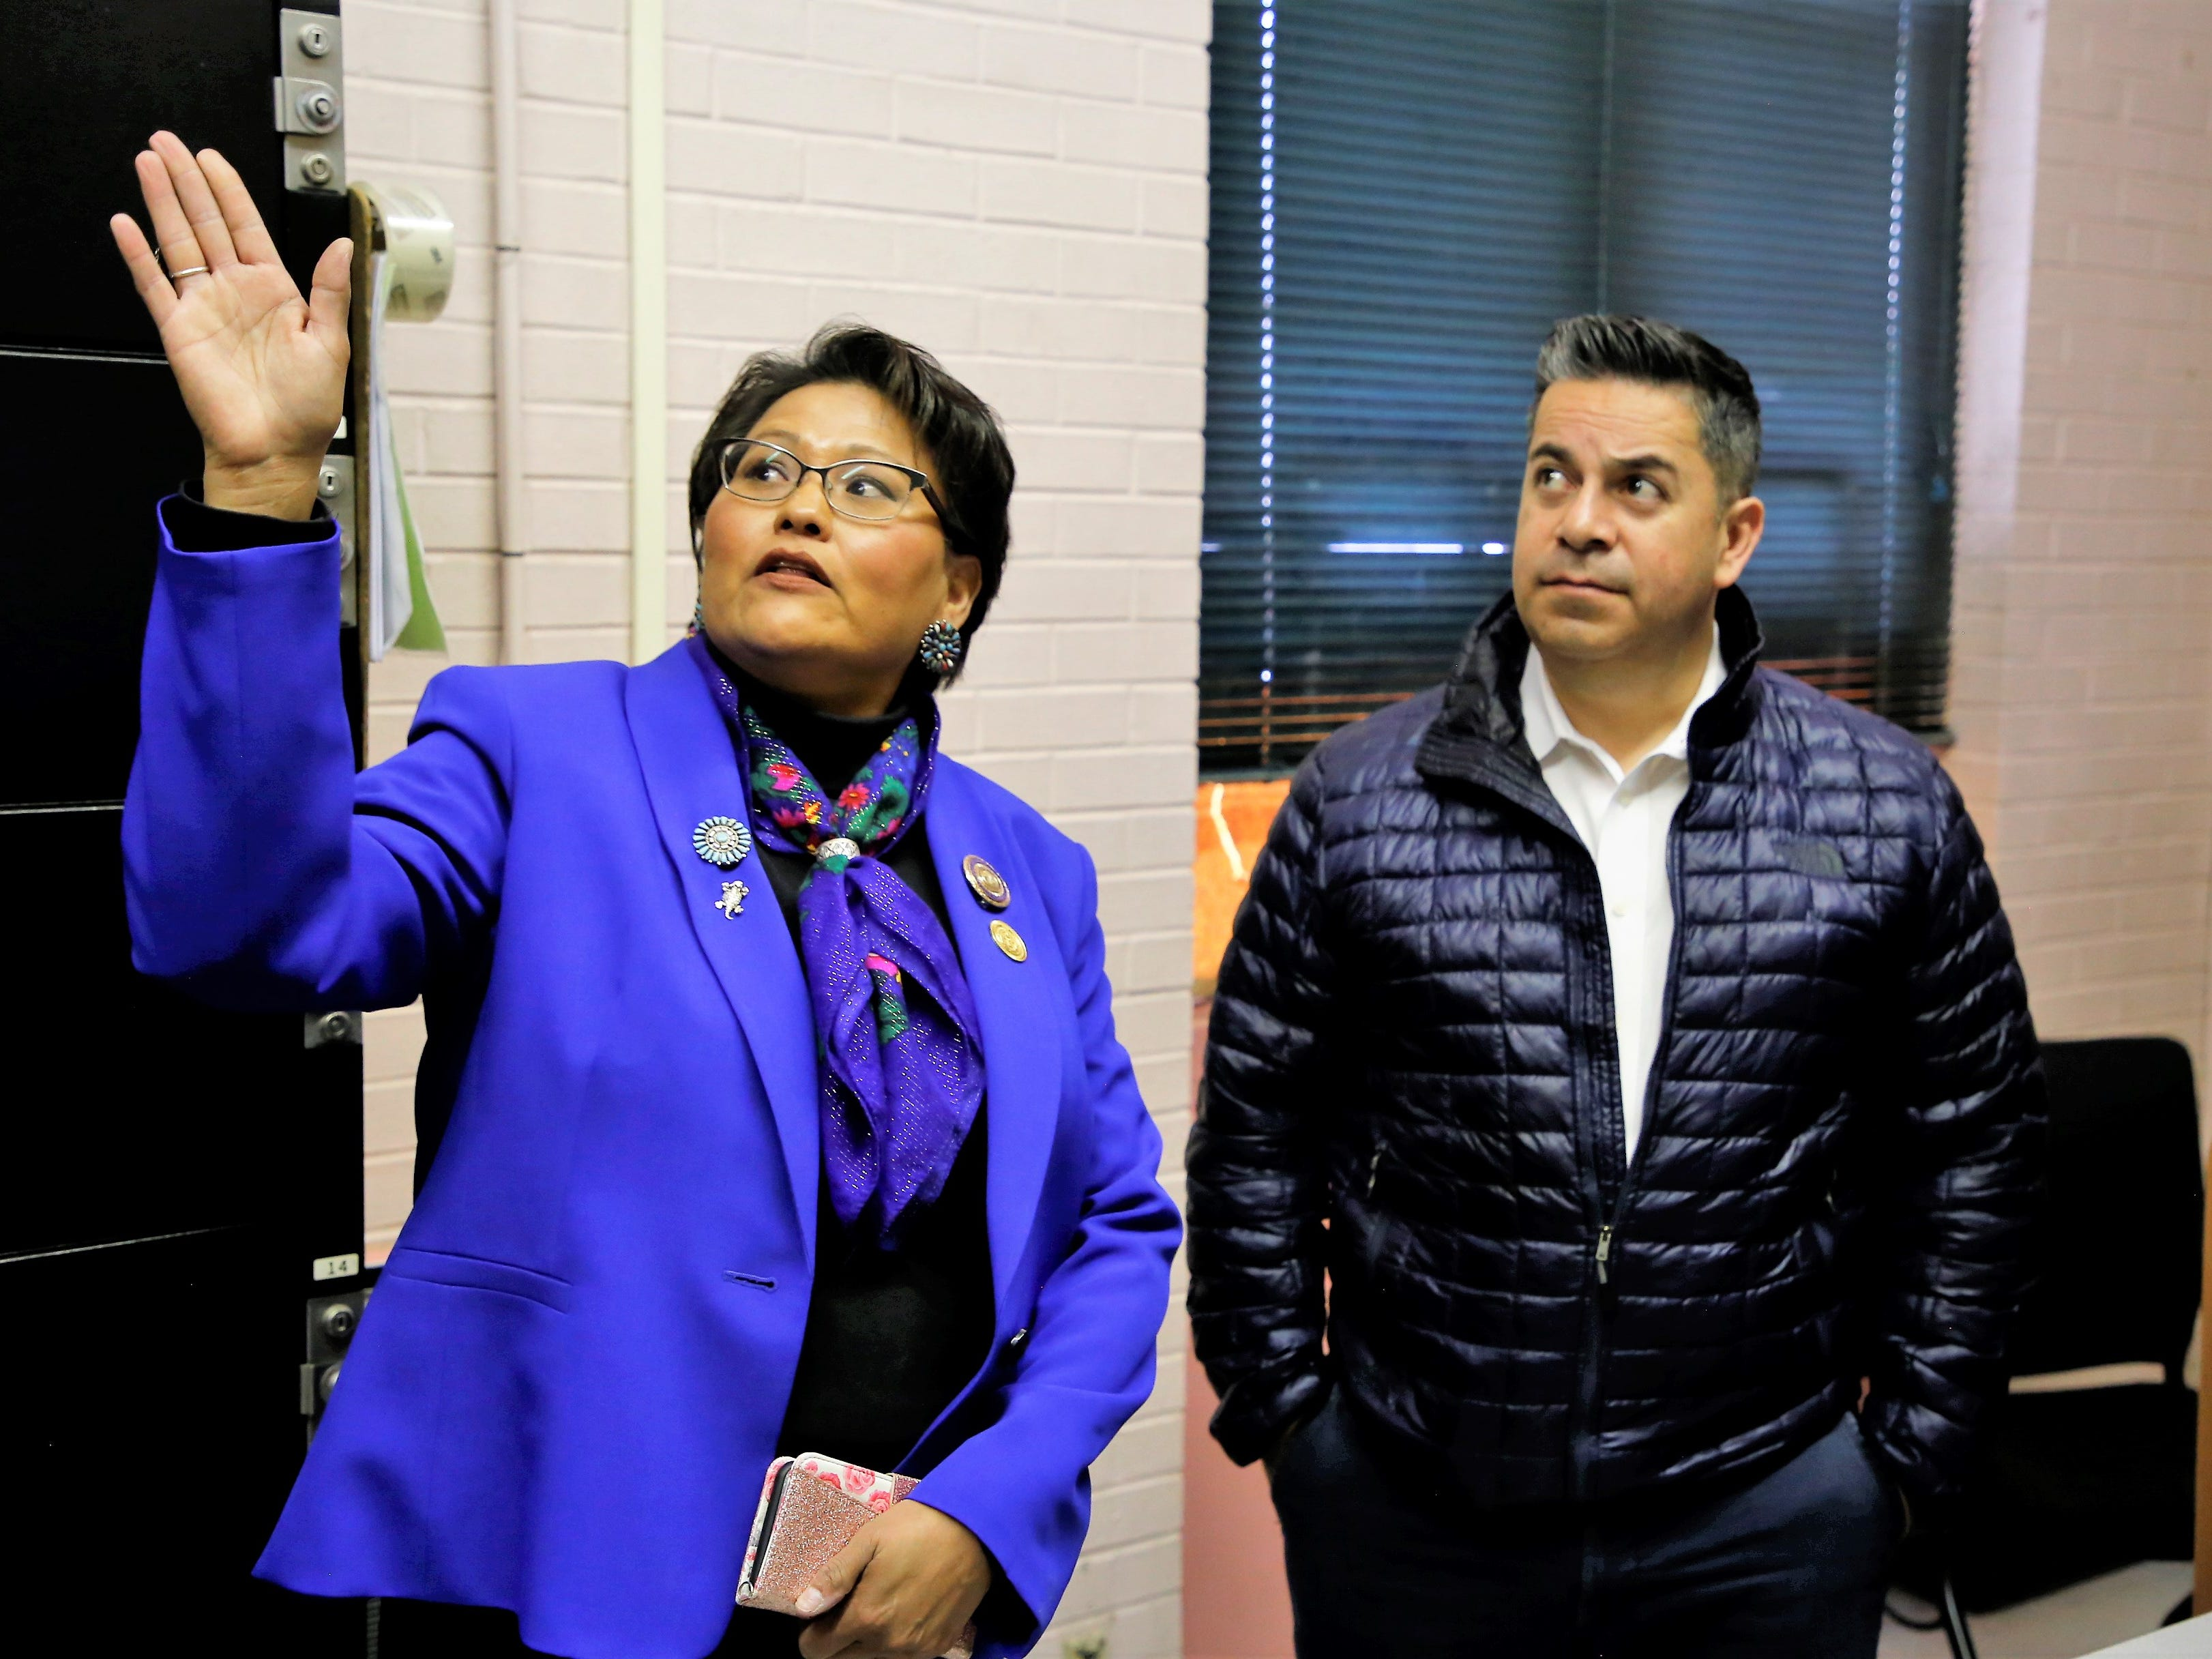 Delegate Eugenia Charles-Newton, left, who represents Shiprock Chapter, speaks to U.S. Rep. Ben Ray Luján, D-N.M. about the condition of the Shiprock Police Department during a tour Friday.